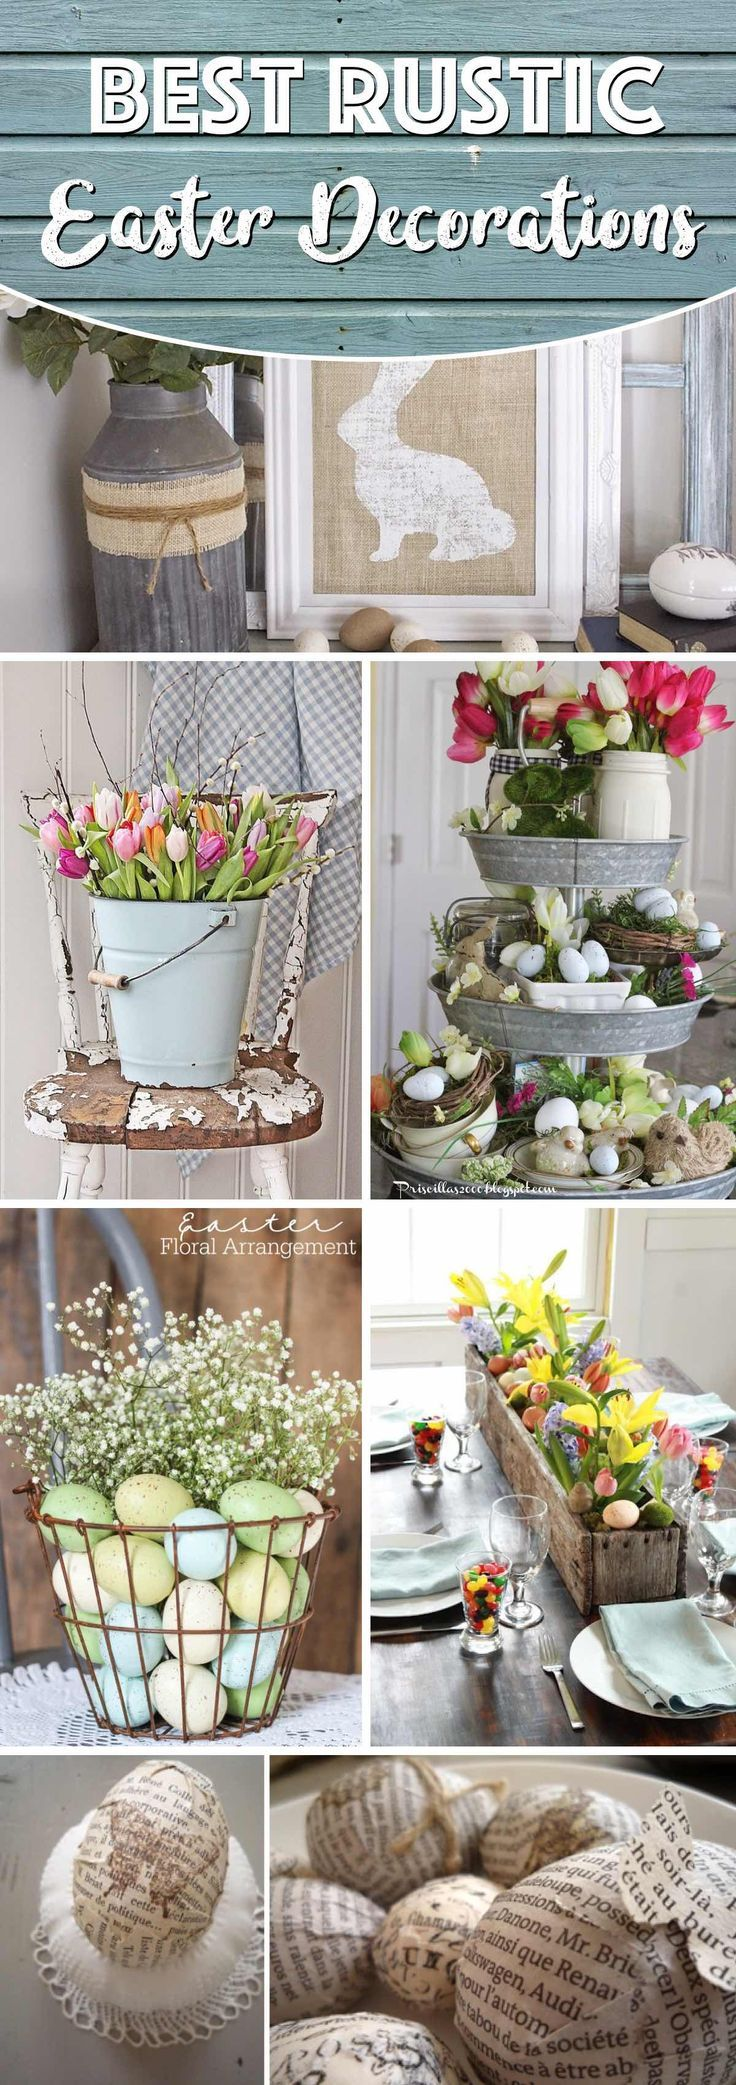 20 Rustic Easter Decorations Bringing A Farmhouse Appeal To Your